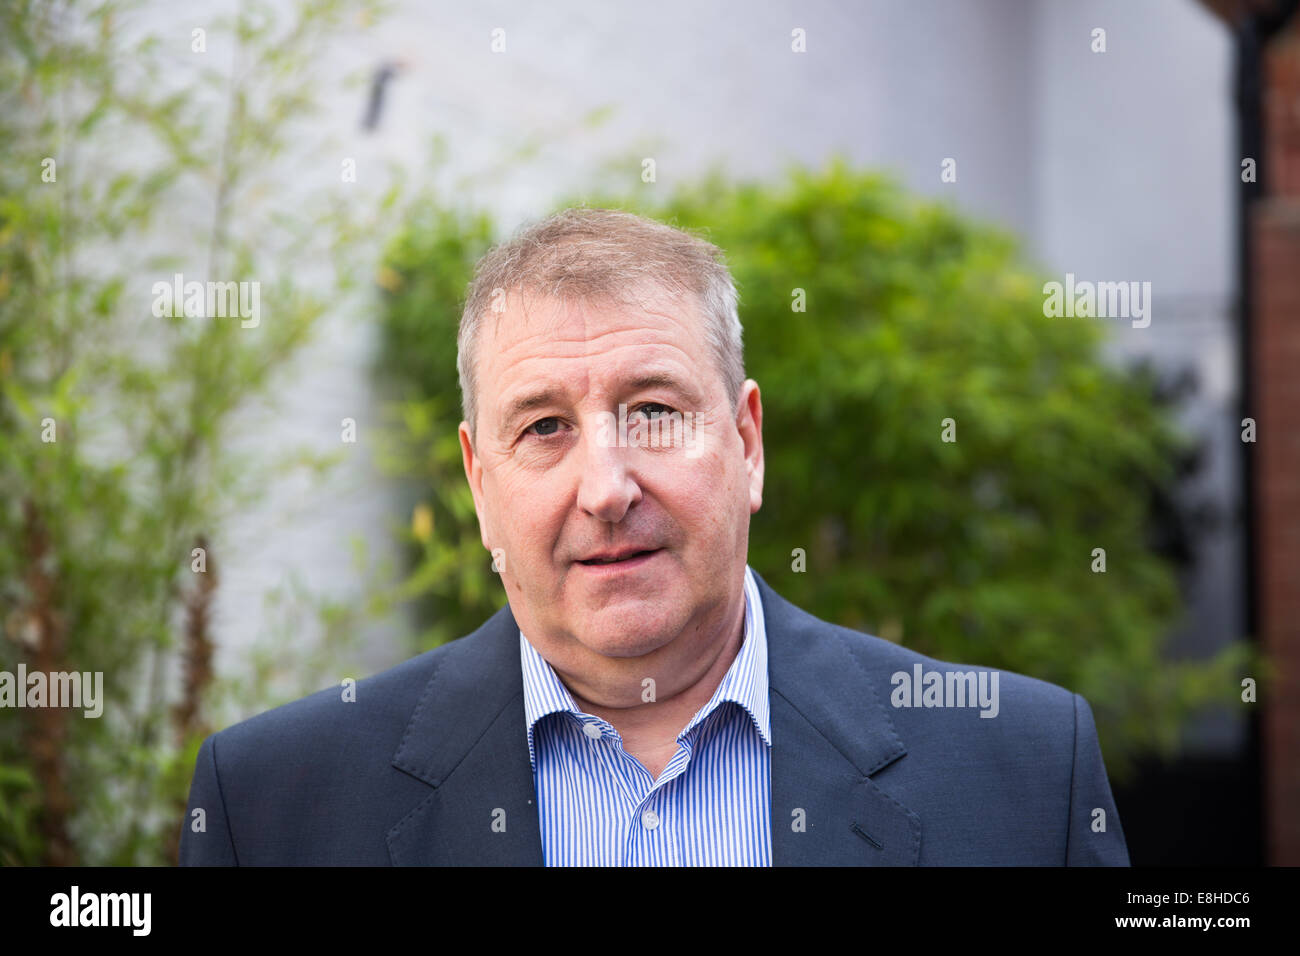 Richard William Littlejohn is an English author, broadcaster and journalist. - Stock Image